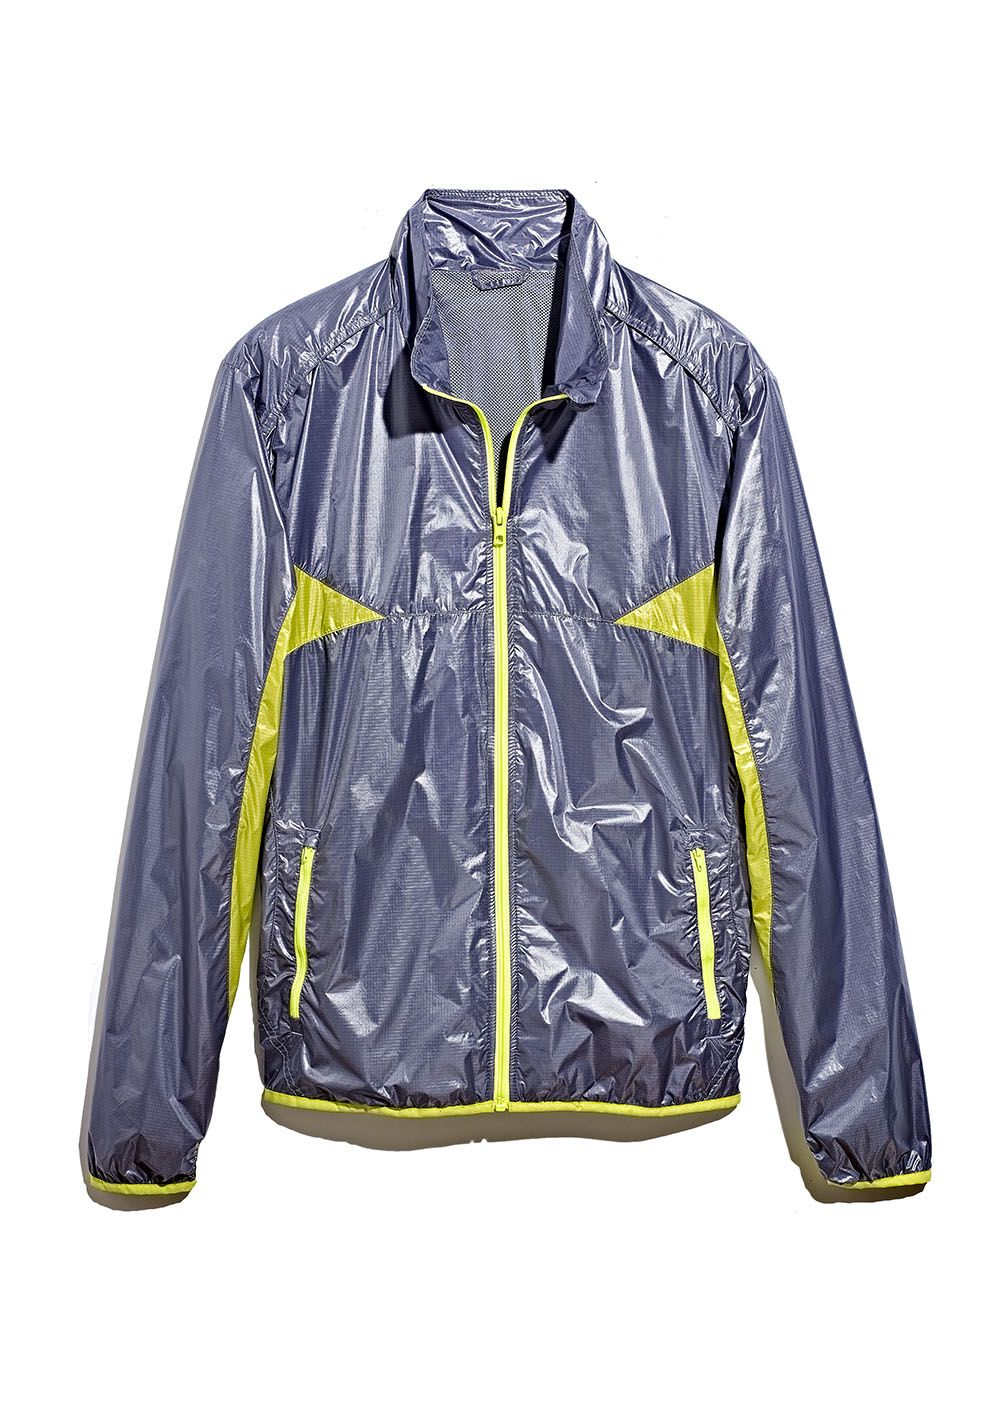 Iron Man Look For The Newest Styles In Athletic Shirts Jackets Like Bold Colors Metallic Fabrics Feeltheburn Athletic Shirts Jackets Shirt Jacket